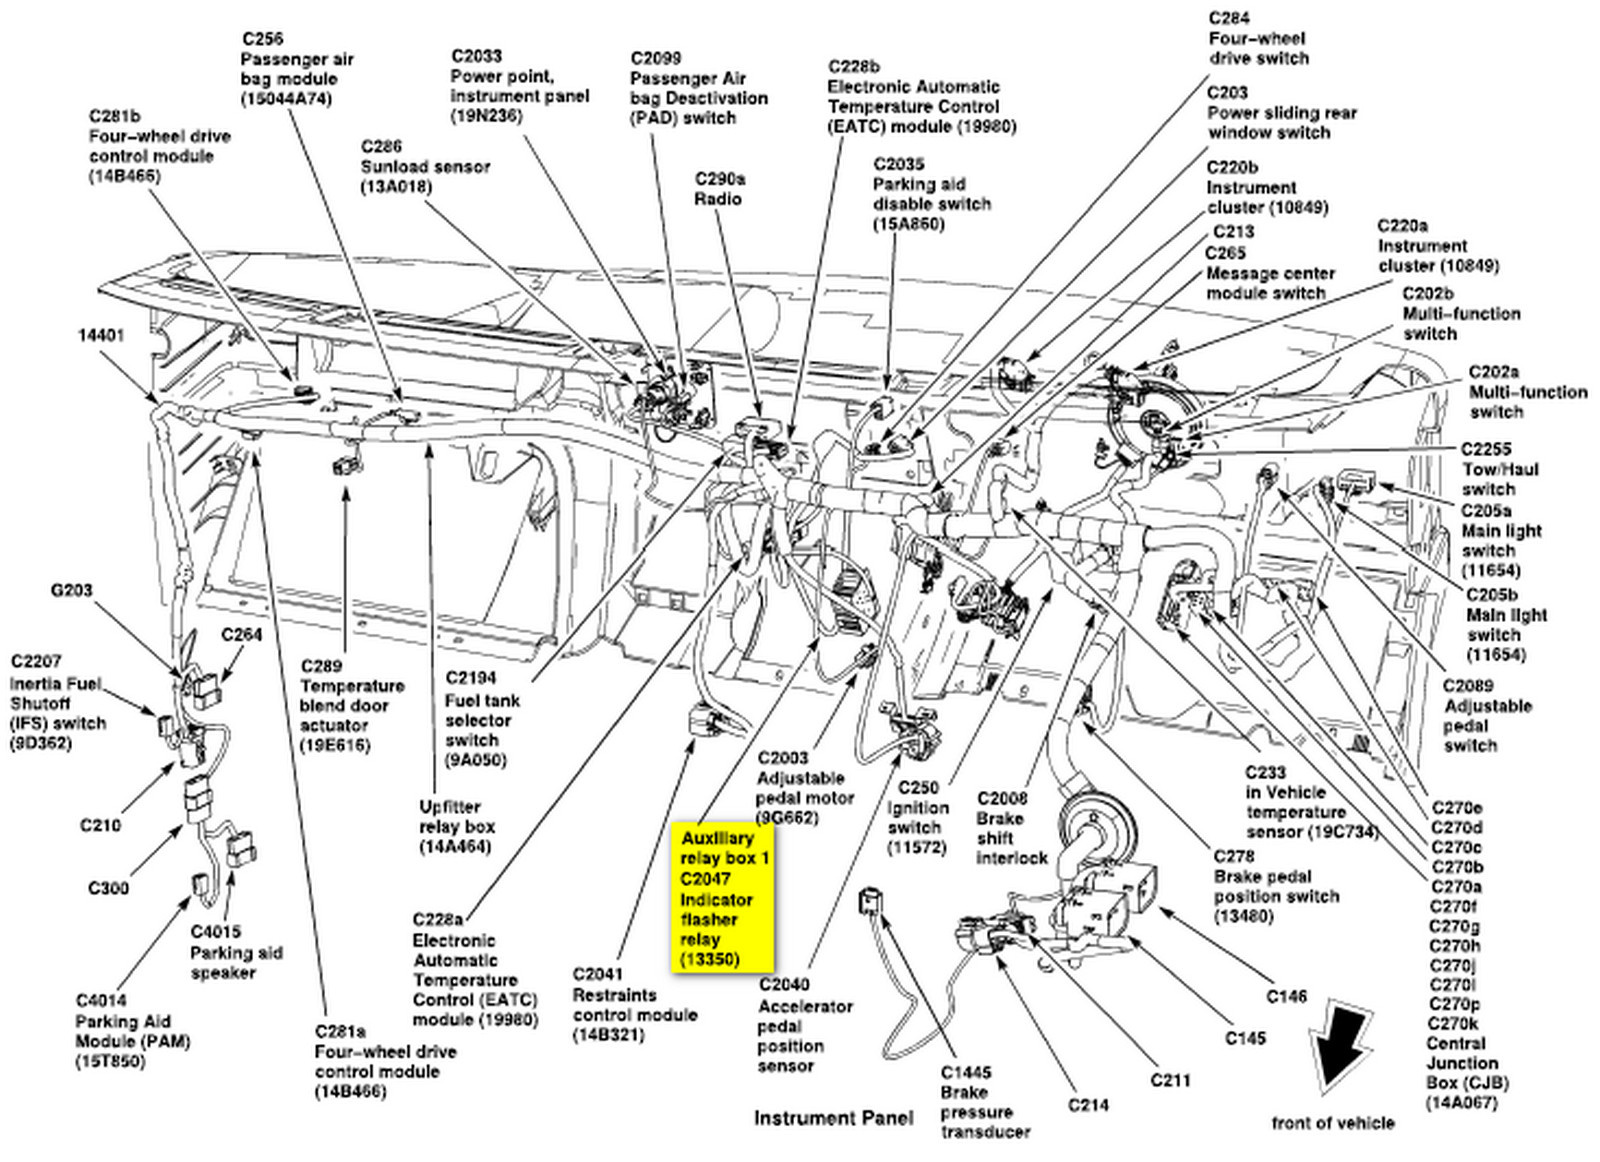 2006 Chevy Aveo Engine Diagram further 2003 Cadillac Cts Oil Filter Location furthermore 3d1rc 1997 Ford Ranger 12v Aux Power Point Problem No Power in addition Where Is Cabin Filter 2011 Chevy Silverado in addition Replace Fuel Pump 2002 Dodge Caravan. on replace cabin filter chevy truck